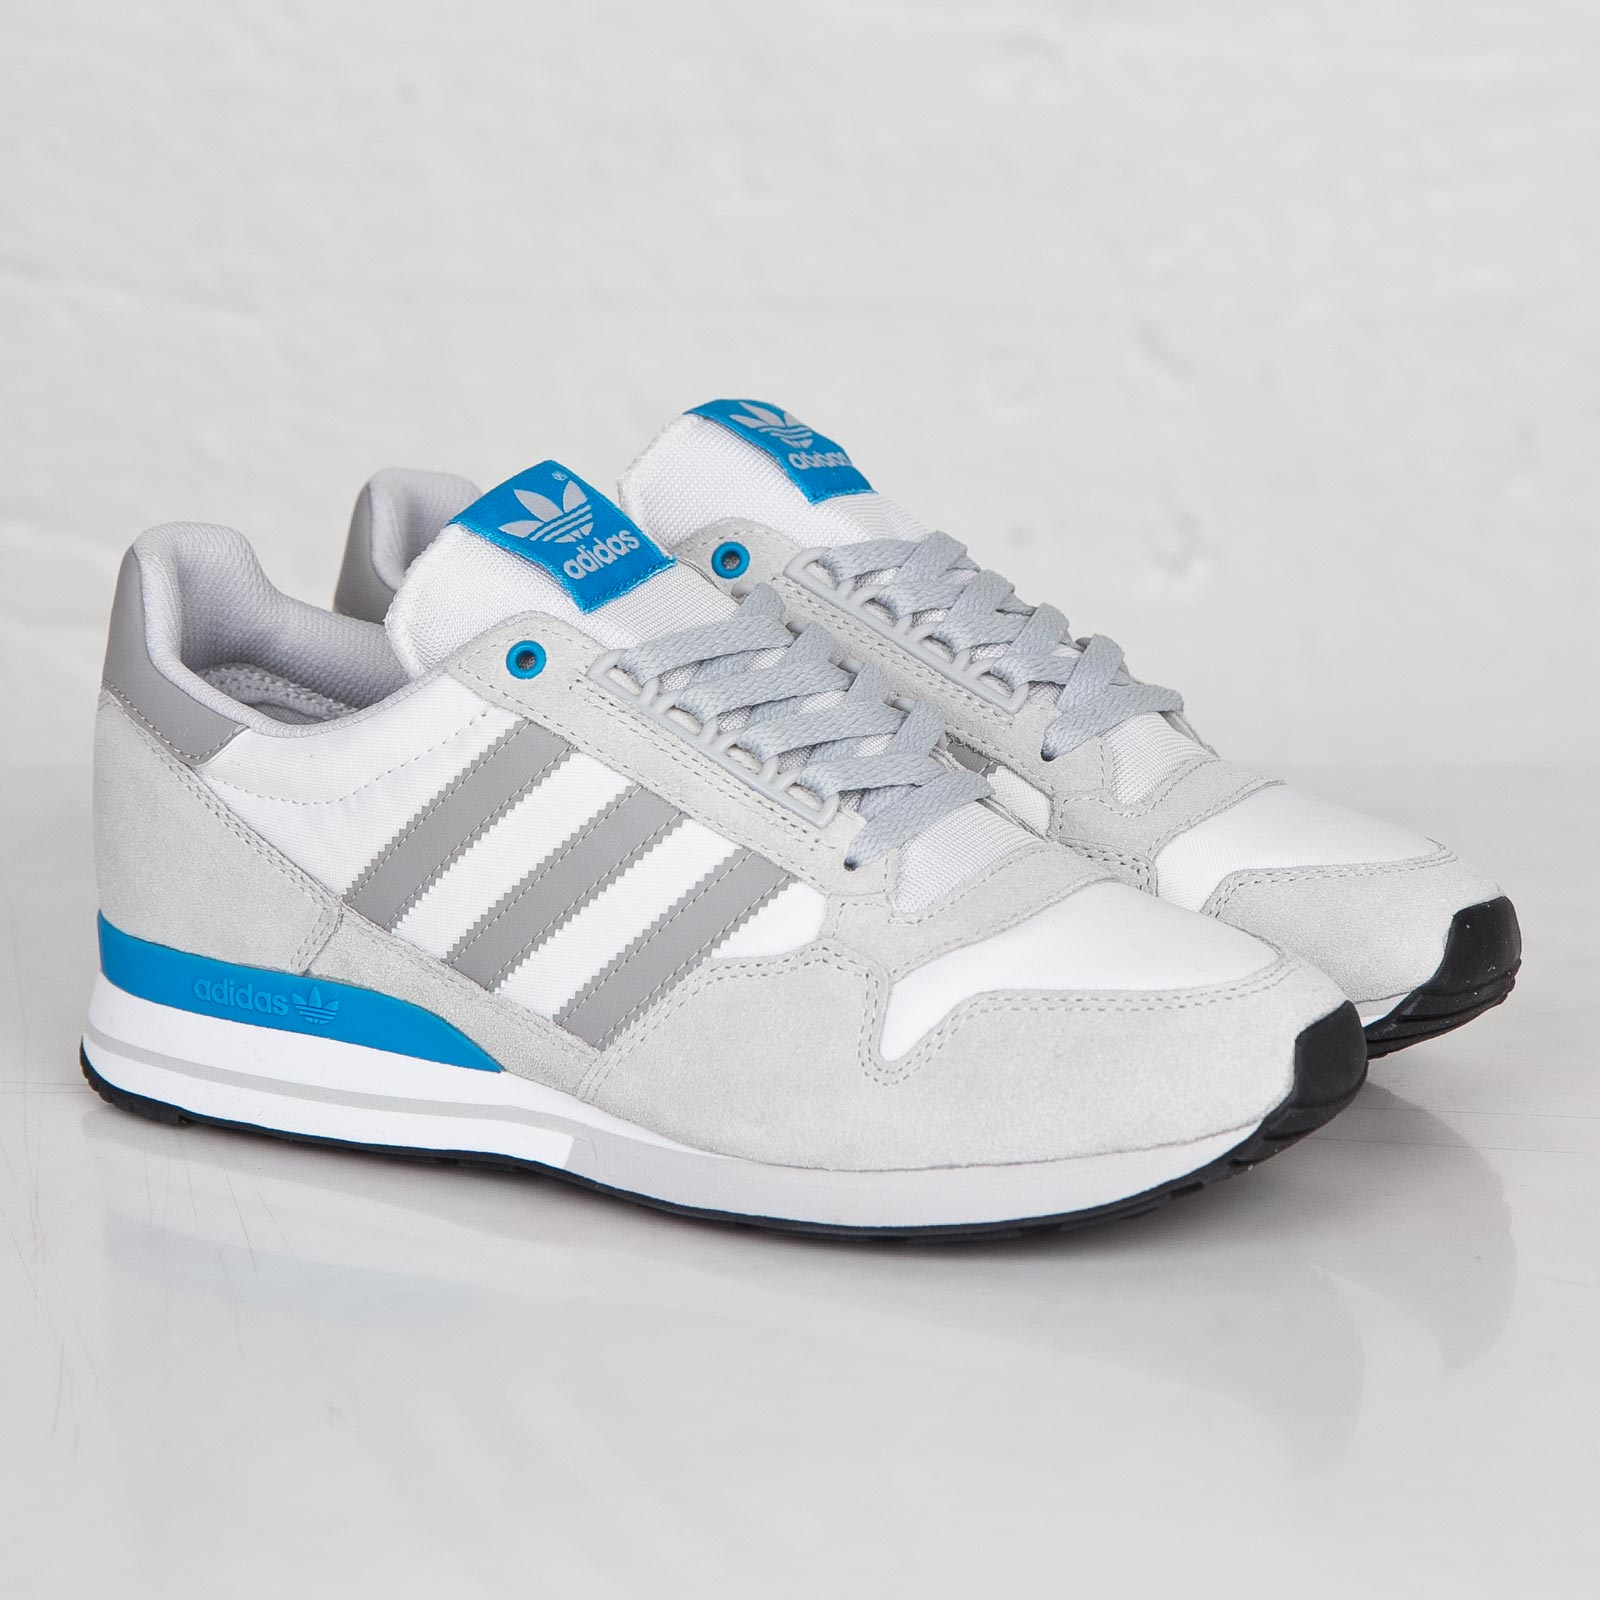 ed50b50be adidas ZX 500 OG - M25393 - Sneakersnstuff